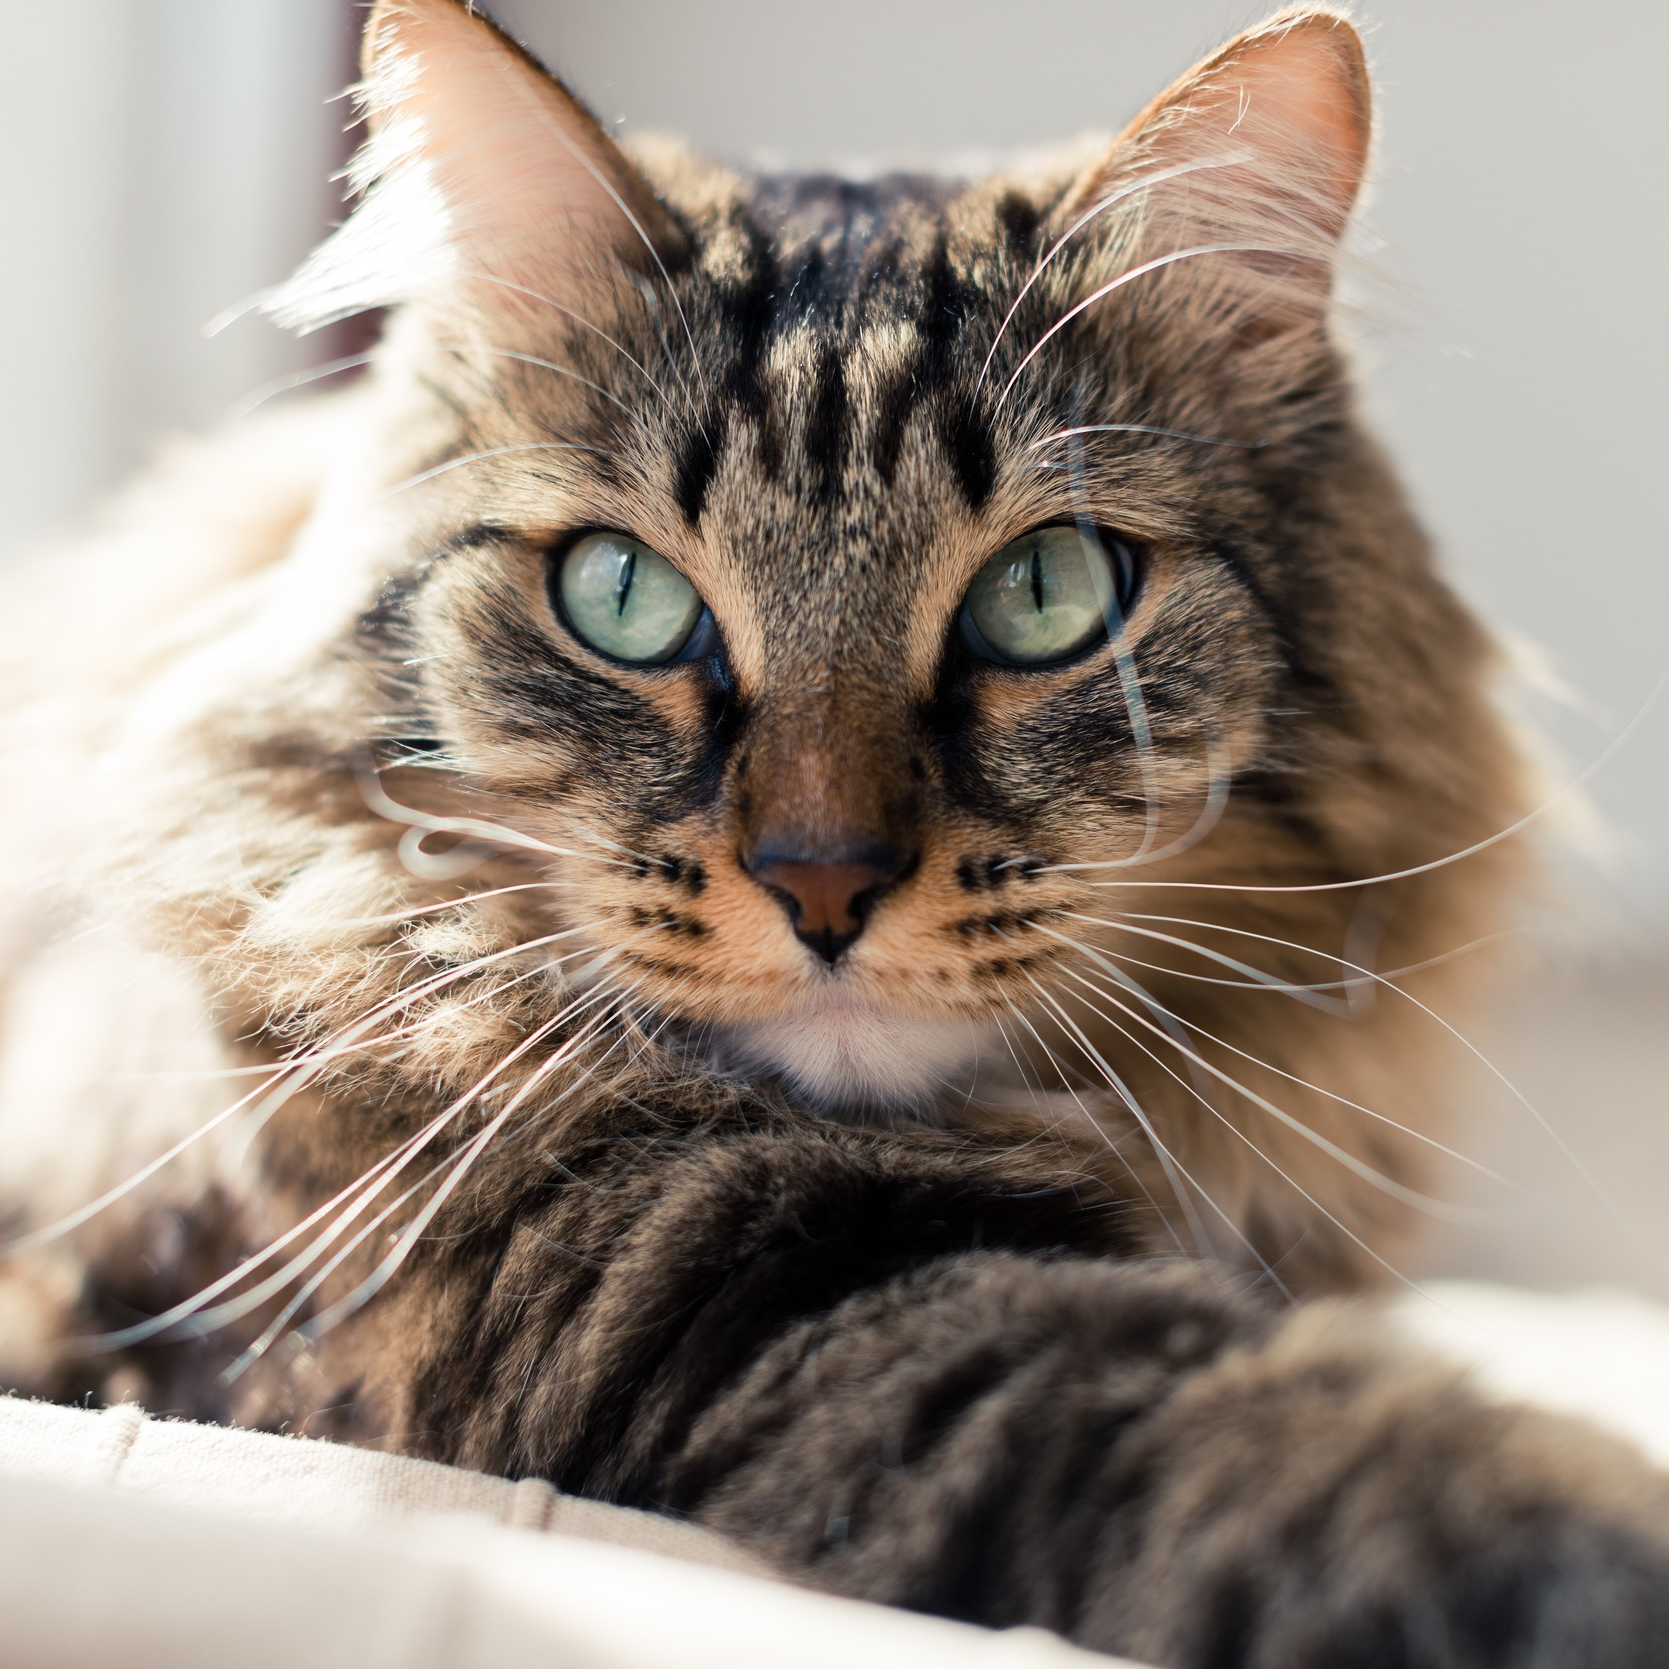 Alafaya Trail Animal Hospital has been our choice for veterinary services for over 2 years. We are quite happy with the care they show for our cat, Spot, and for us. We would highly recommend them for all of your pets' needs.  -Google Review